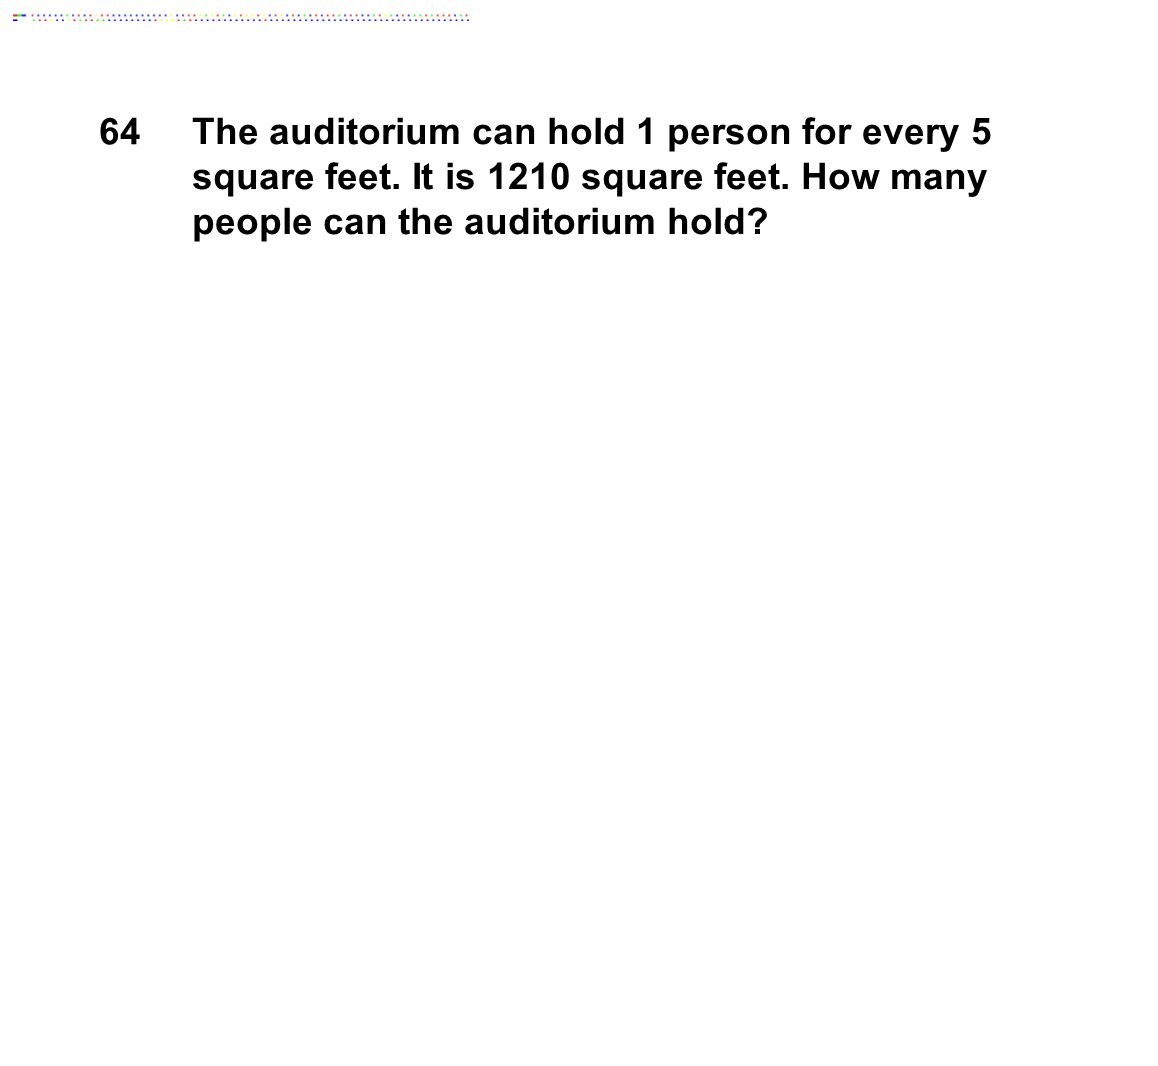 64 The auditorium can hold 1 person for every 5 square feet. It is 1210 square feet. How many people can the auditorium hold?